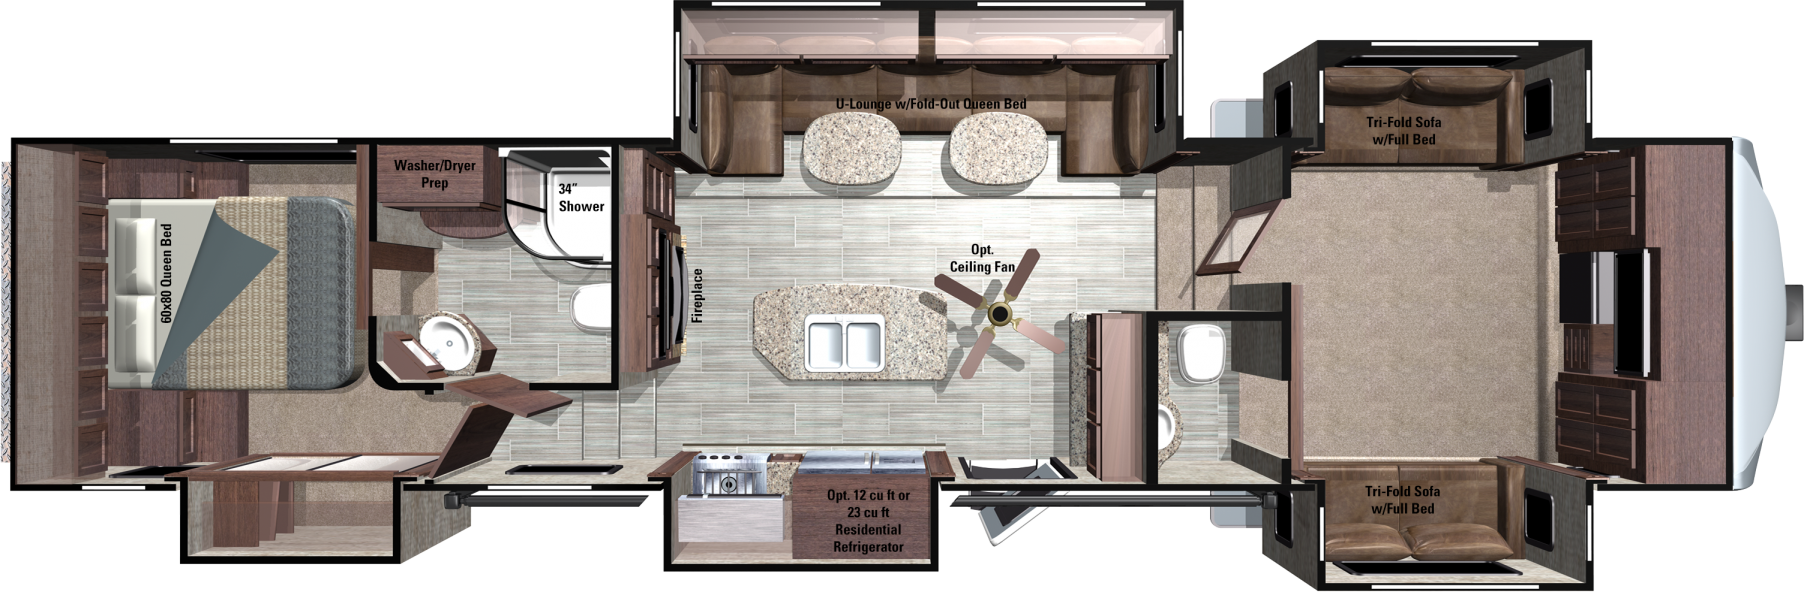 MF376FBH Floorplan